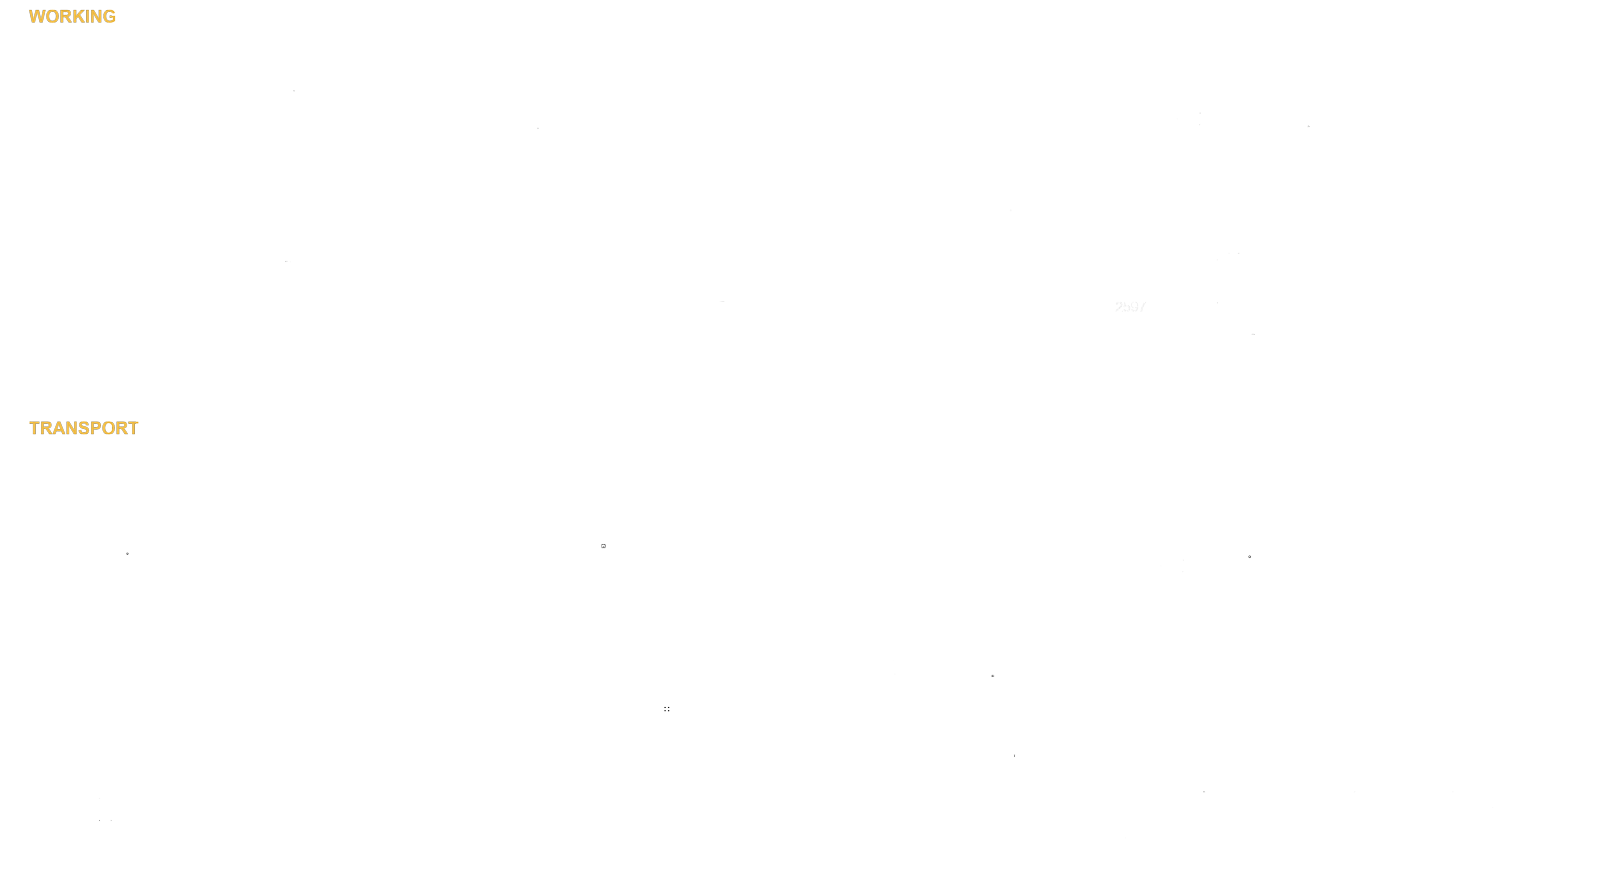 I12 Tracked Impact Crusher Dimension Drawings